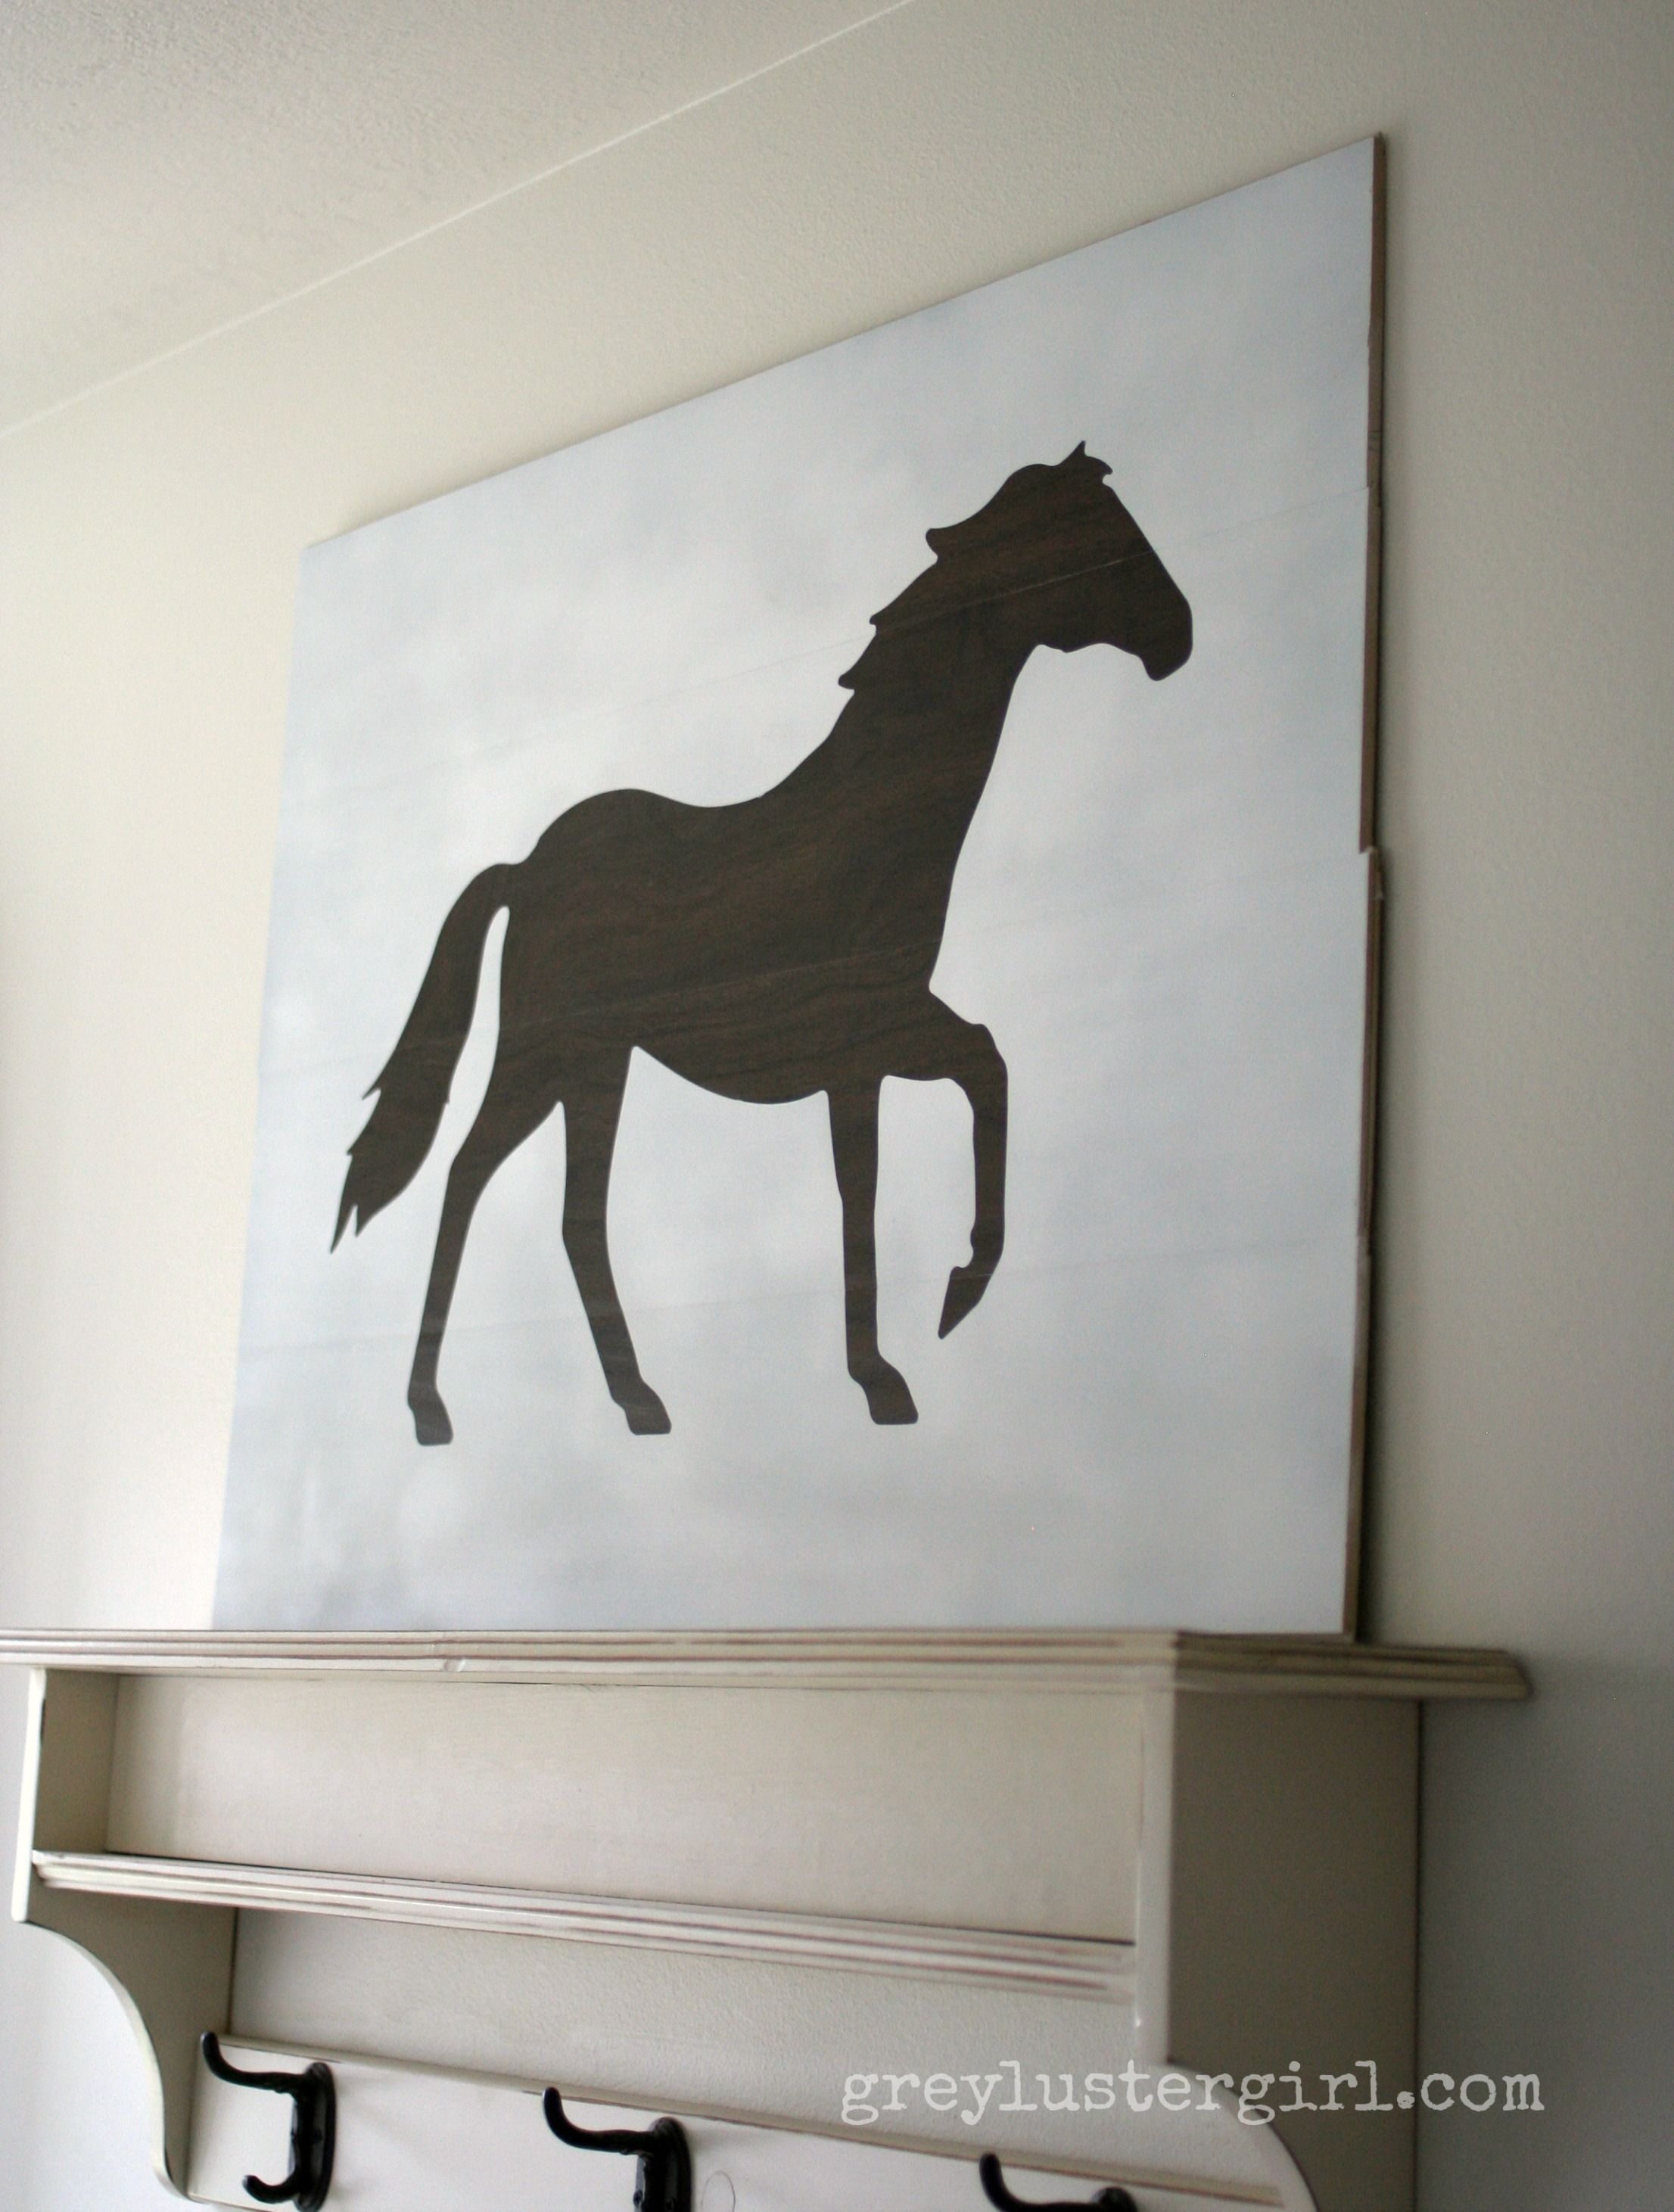 Diy Large Stencil Wall Art Silhouette Cameo Wrought Iron